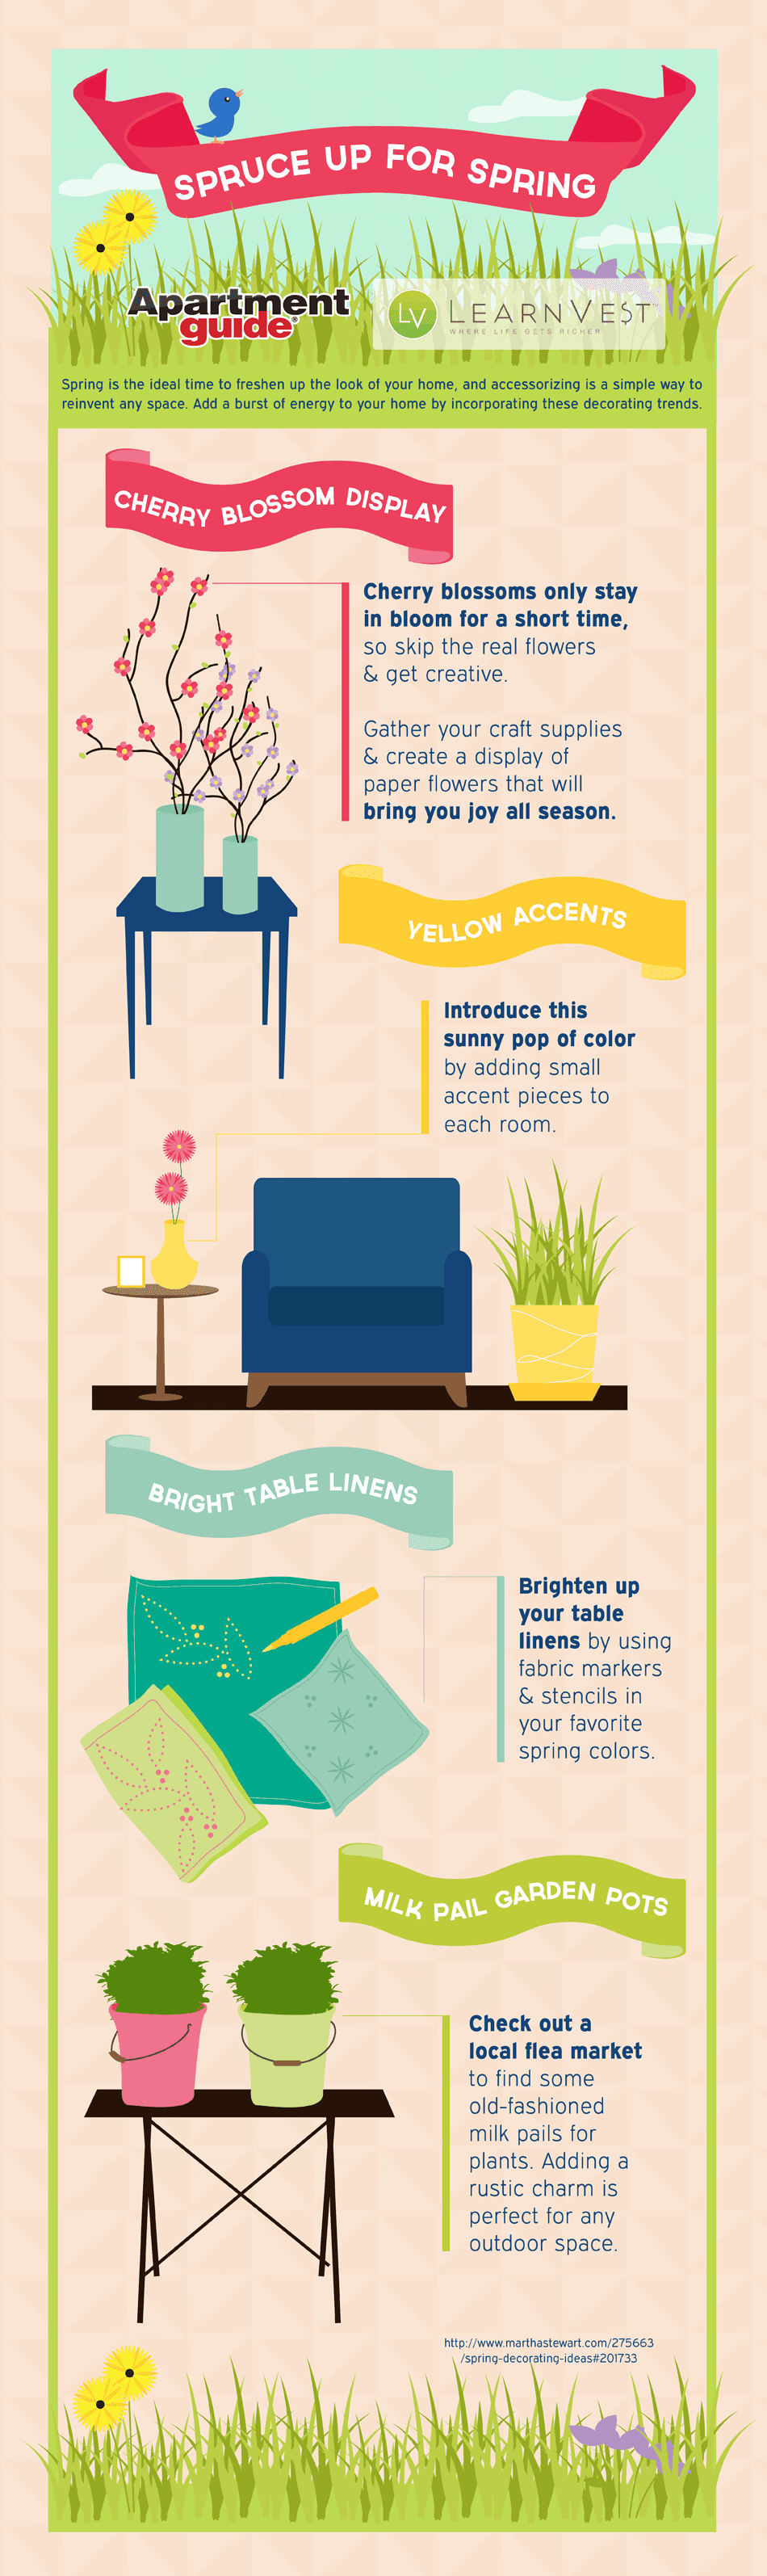 Spruce up for spring freshen up your home infographic for Home decor advice